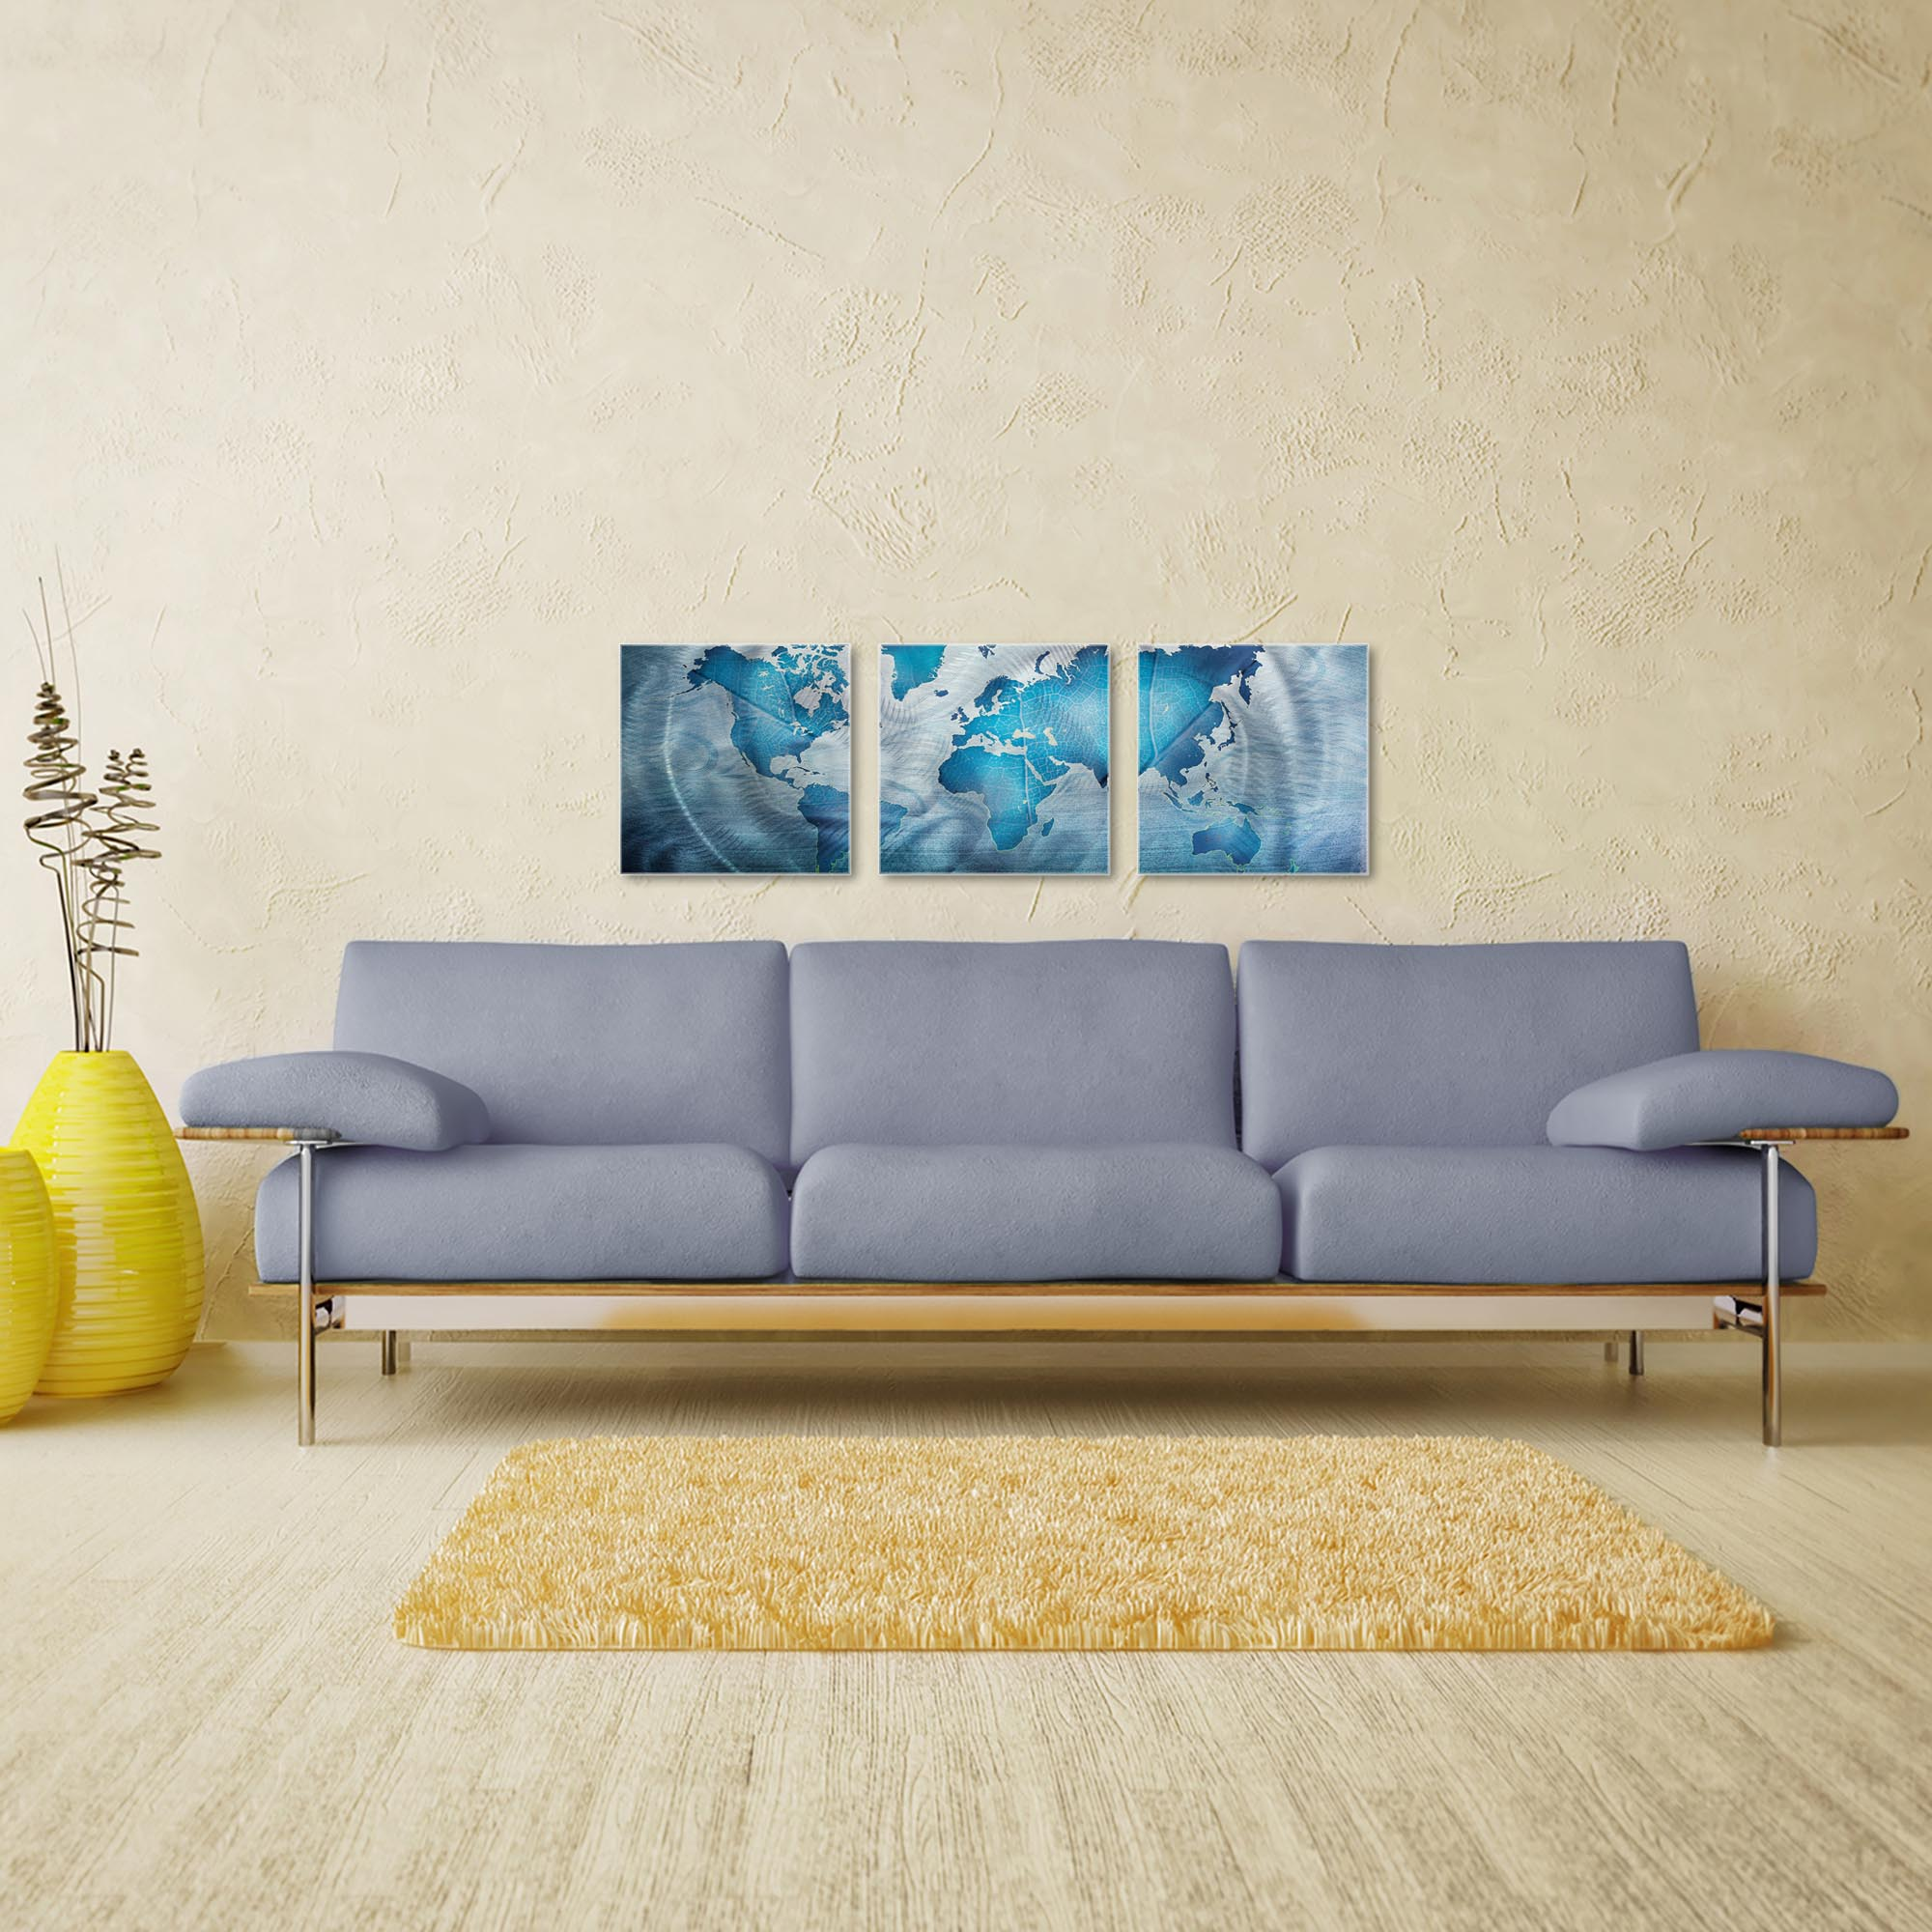 Land and Sea Triptych 38x12in. Metal or Acrylic Contemporary Decor - Image 3